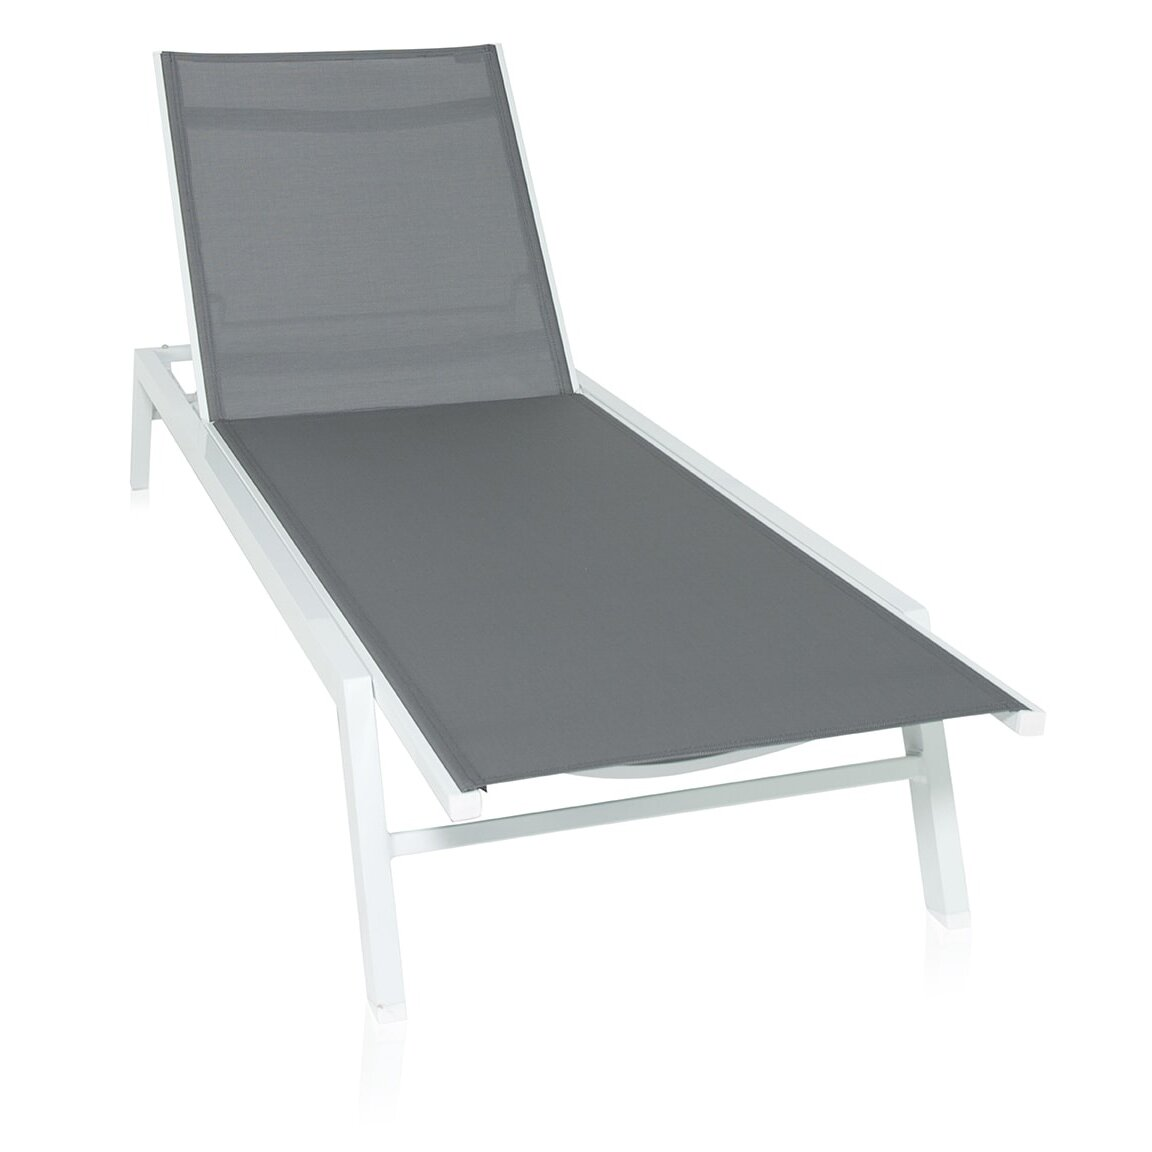 outdoor chaise lounge reviews allmodern. Black Bedroom Furniture Sets. Home Design Ideas